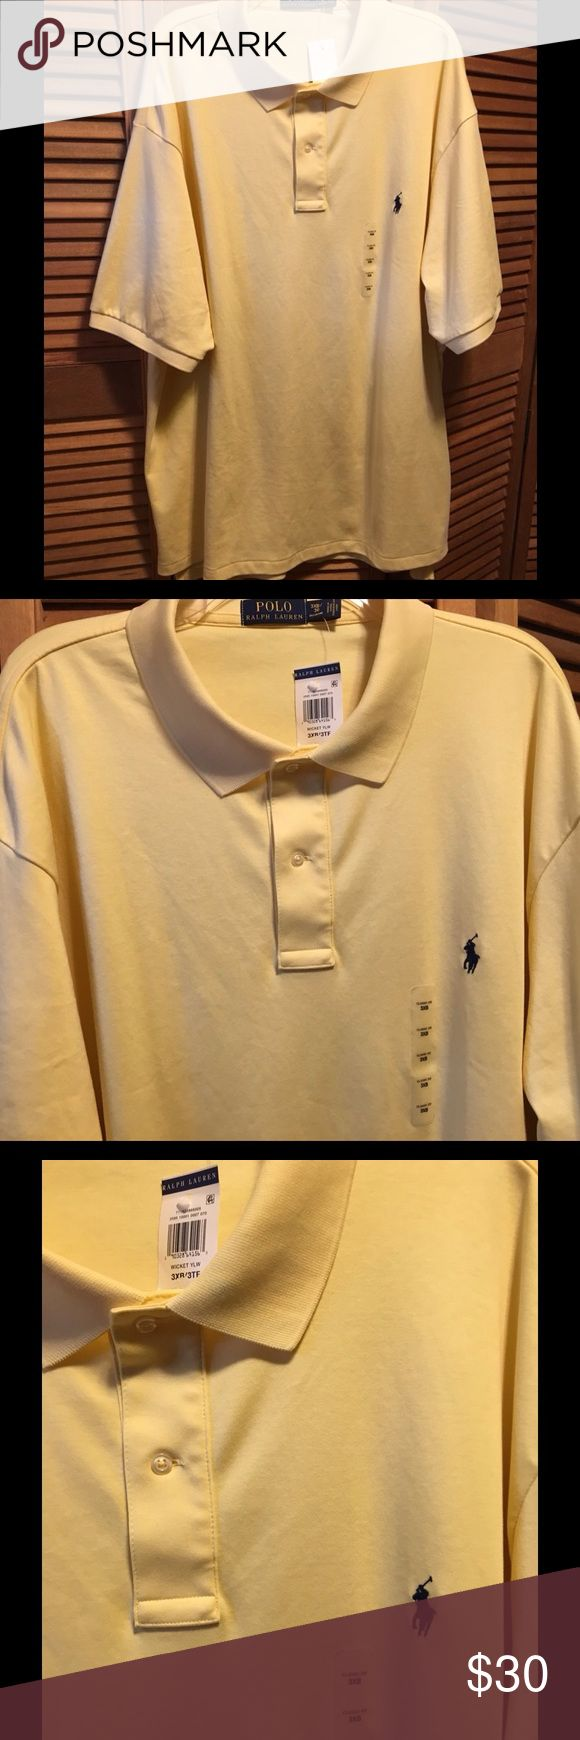 Ralph Lauren Yellow Polo Shirt Yellow polo shirt with pony logo with splits on the sides. 3XB. 100% cotton. NWT. Ralph Lauren Shirts Polos